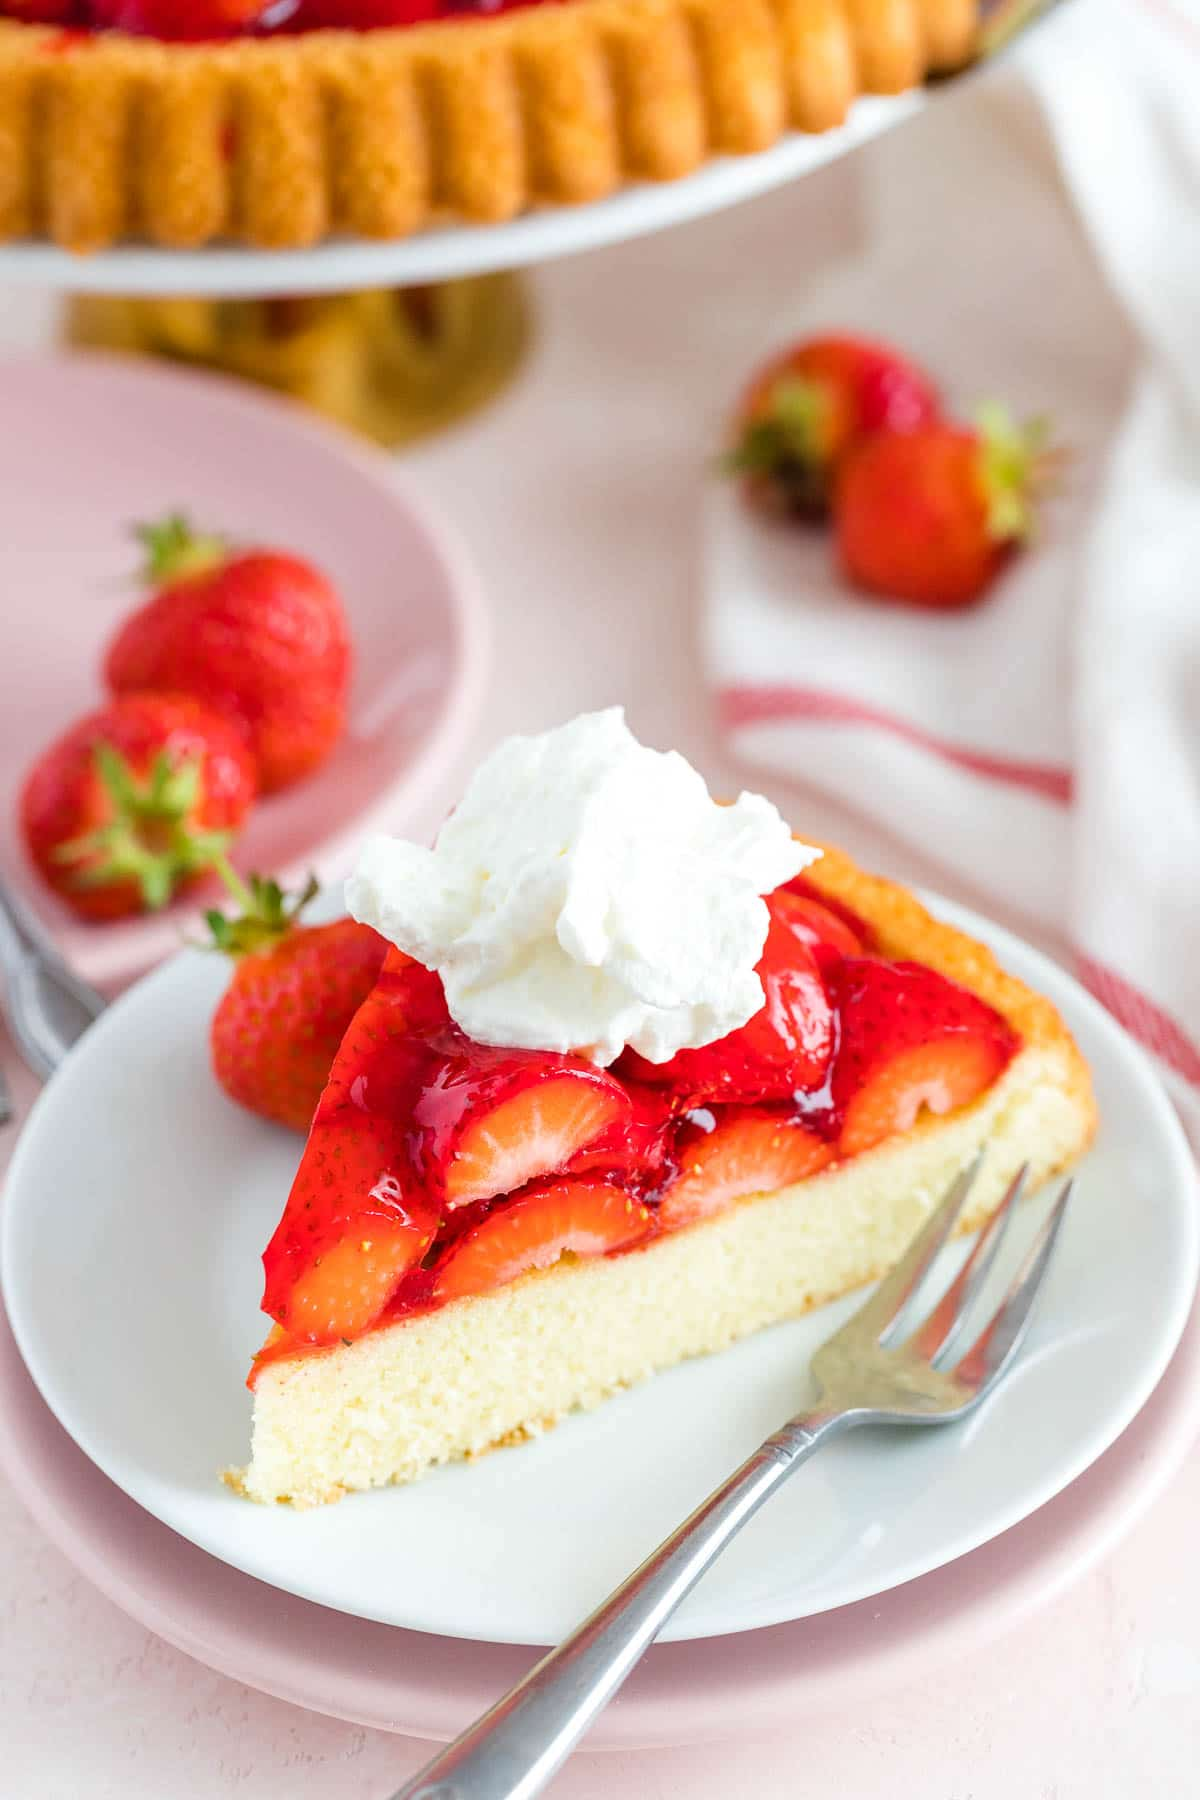 A slice of strawberry cake on a plate with a fork